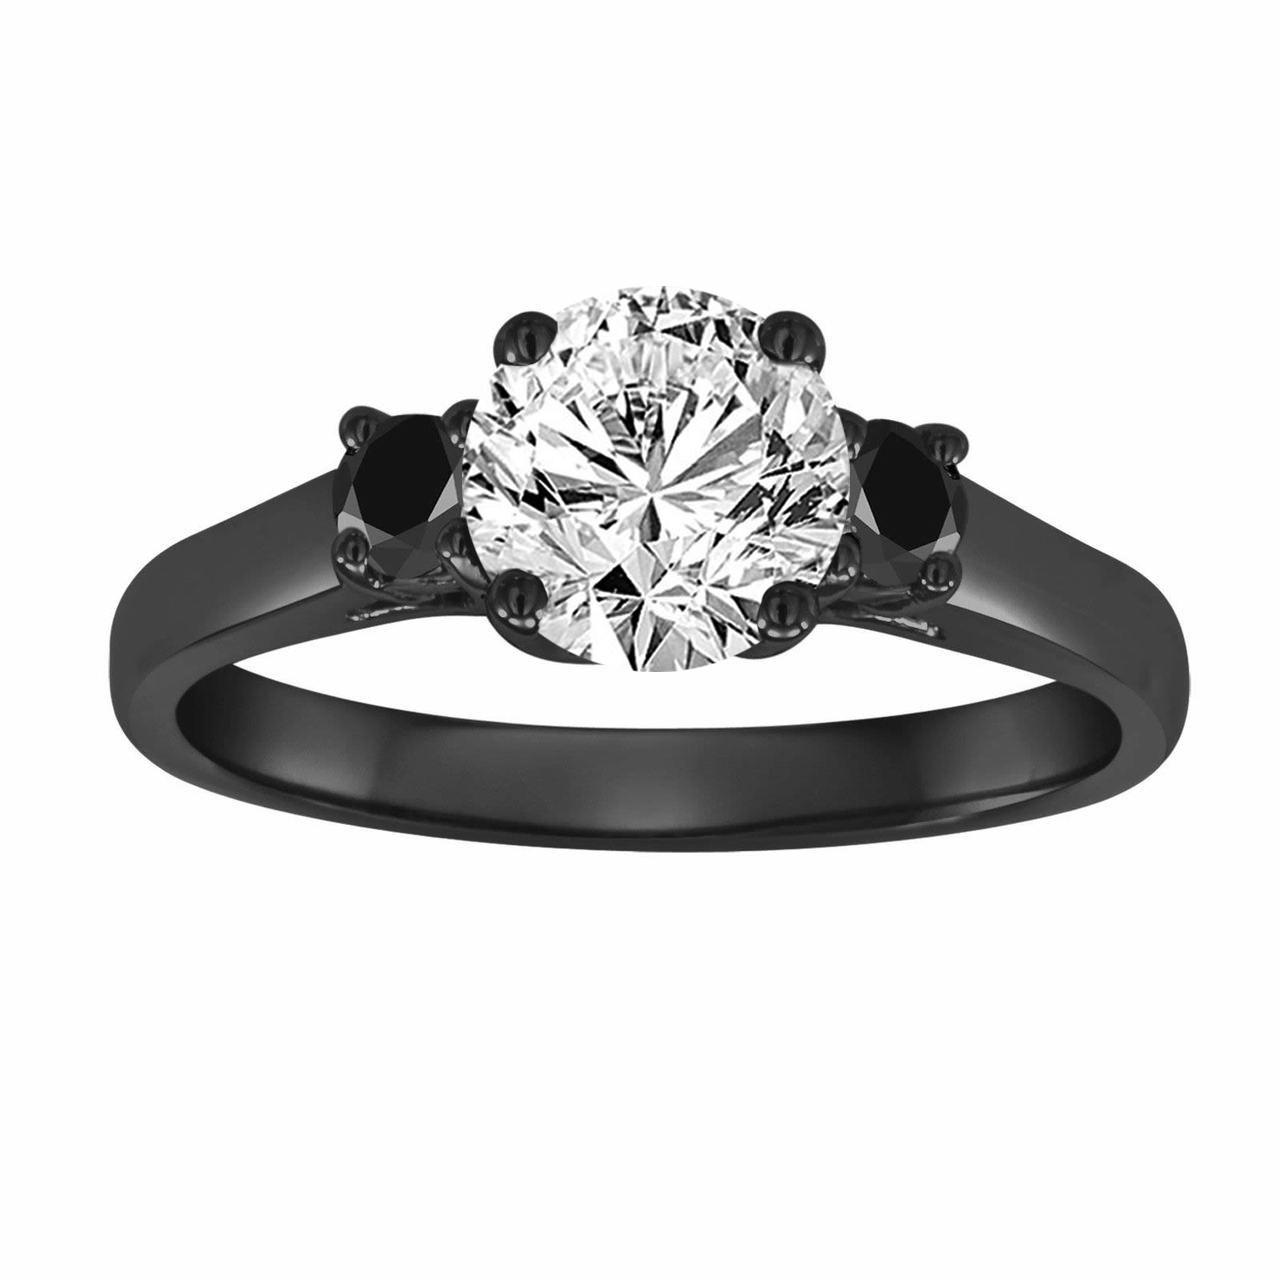 gia 1 08 carat three stone diamond engagement ring with fancy black